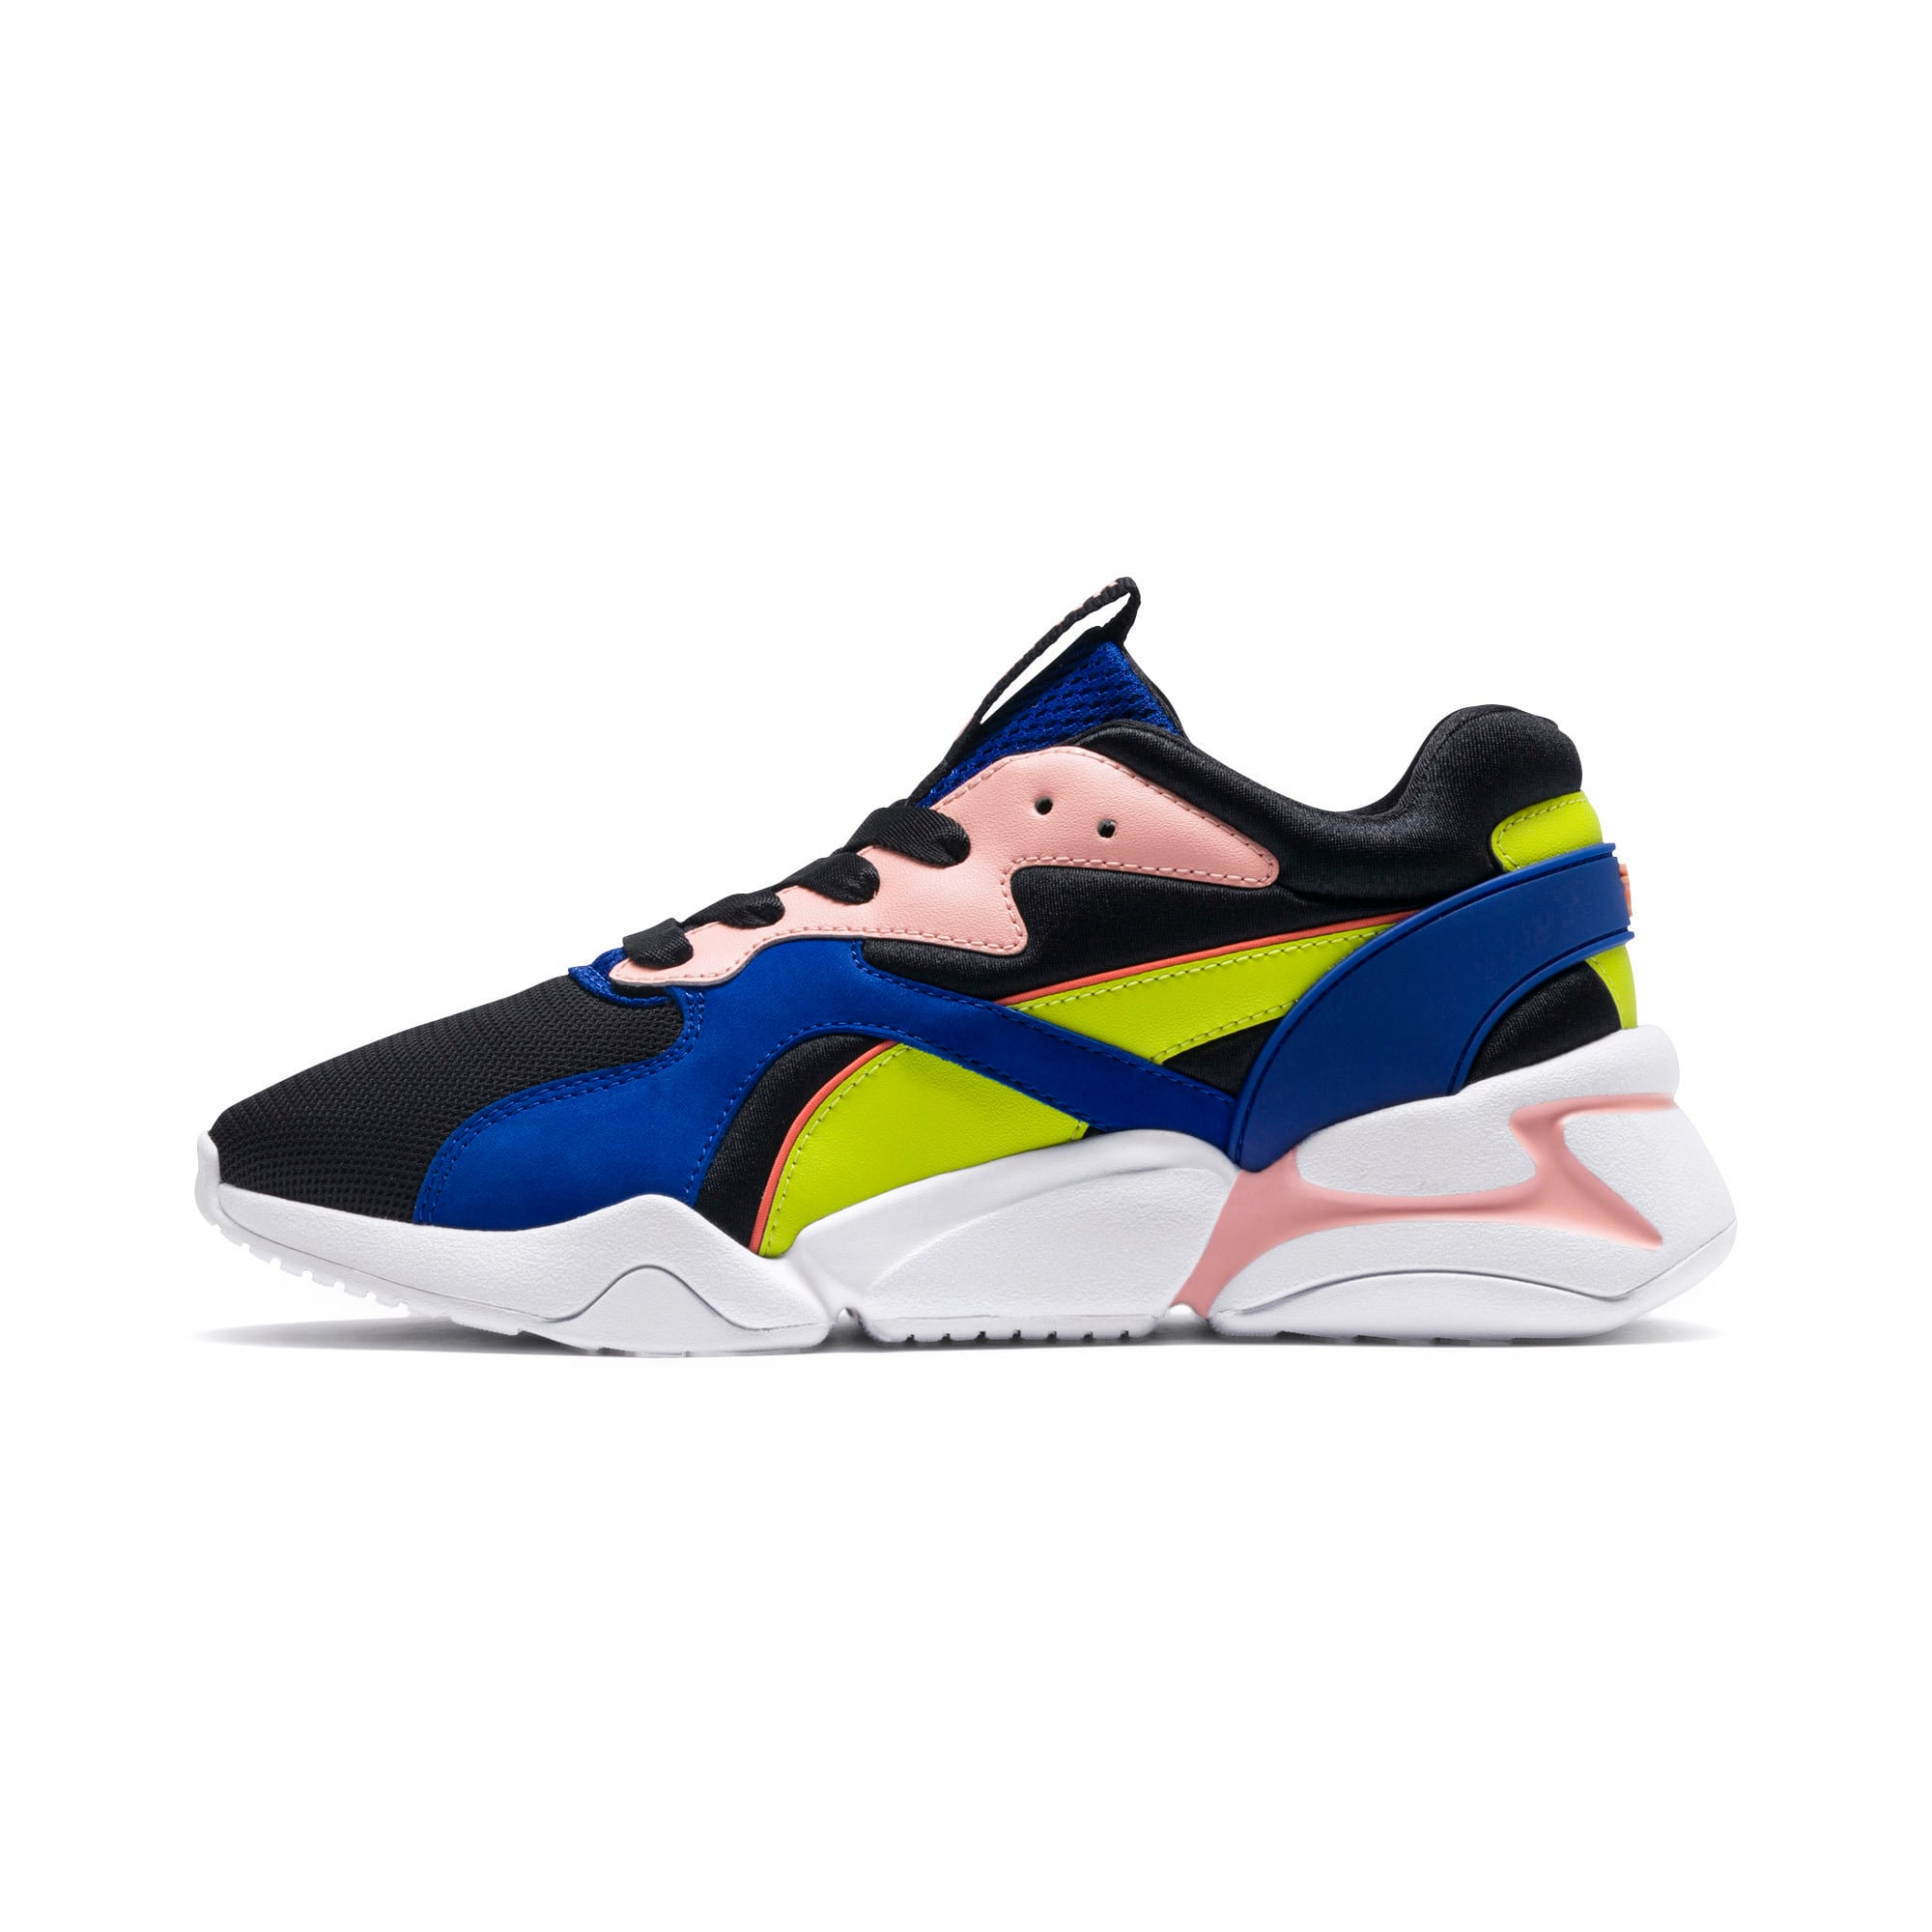 Thumbnail 1 of プーマ ノーヴァ GRL PWR ウィメンズ, Puma Black-Surf The Web, medium-JPN